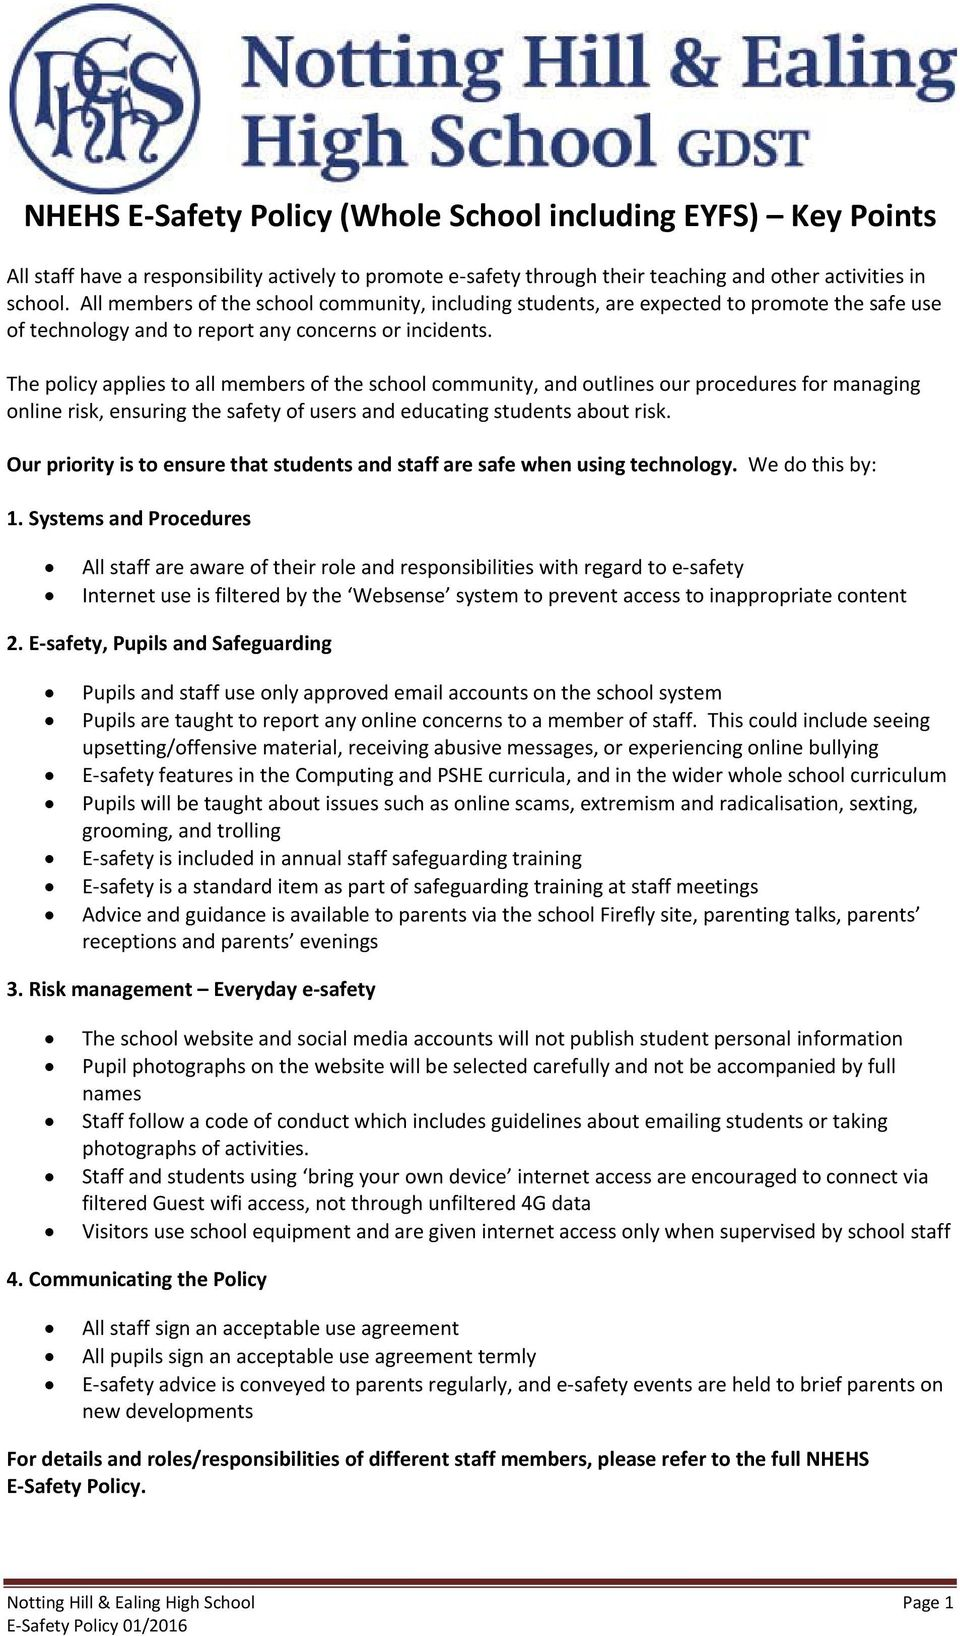 The policy applies to all members of the school community, and outlines our procedures for managing online risk, ensuring the safety of users and educating students about risk.